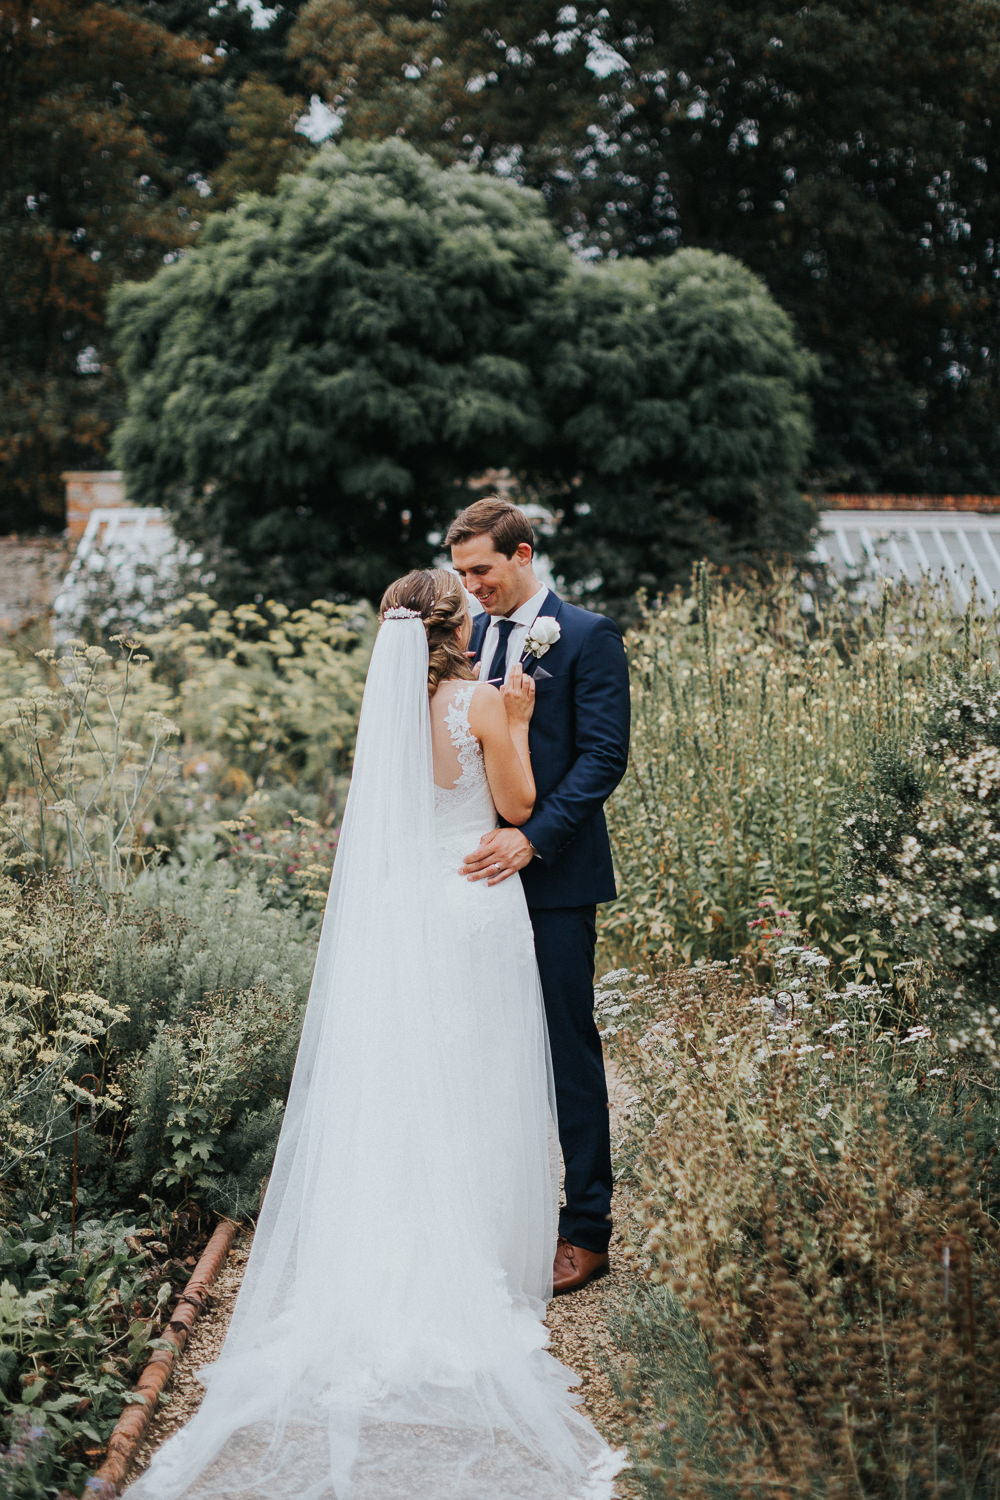 Bride Bridal Sleeveless Embroidered Three Piece Suit Navy Grey Waistcoat Groom Backless Veil Loseley Park Wedding Kit Myers Photography